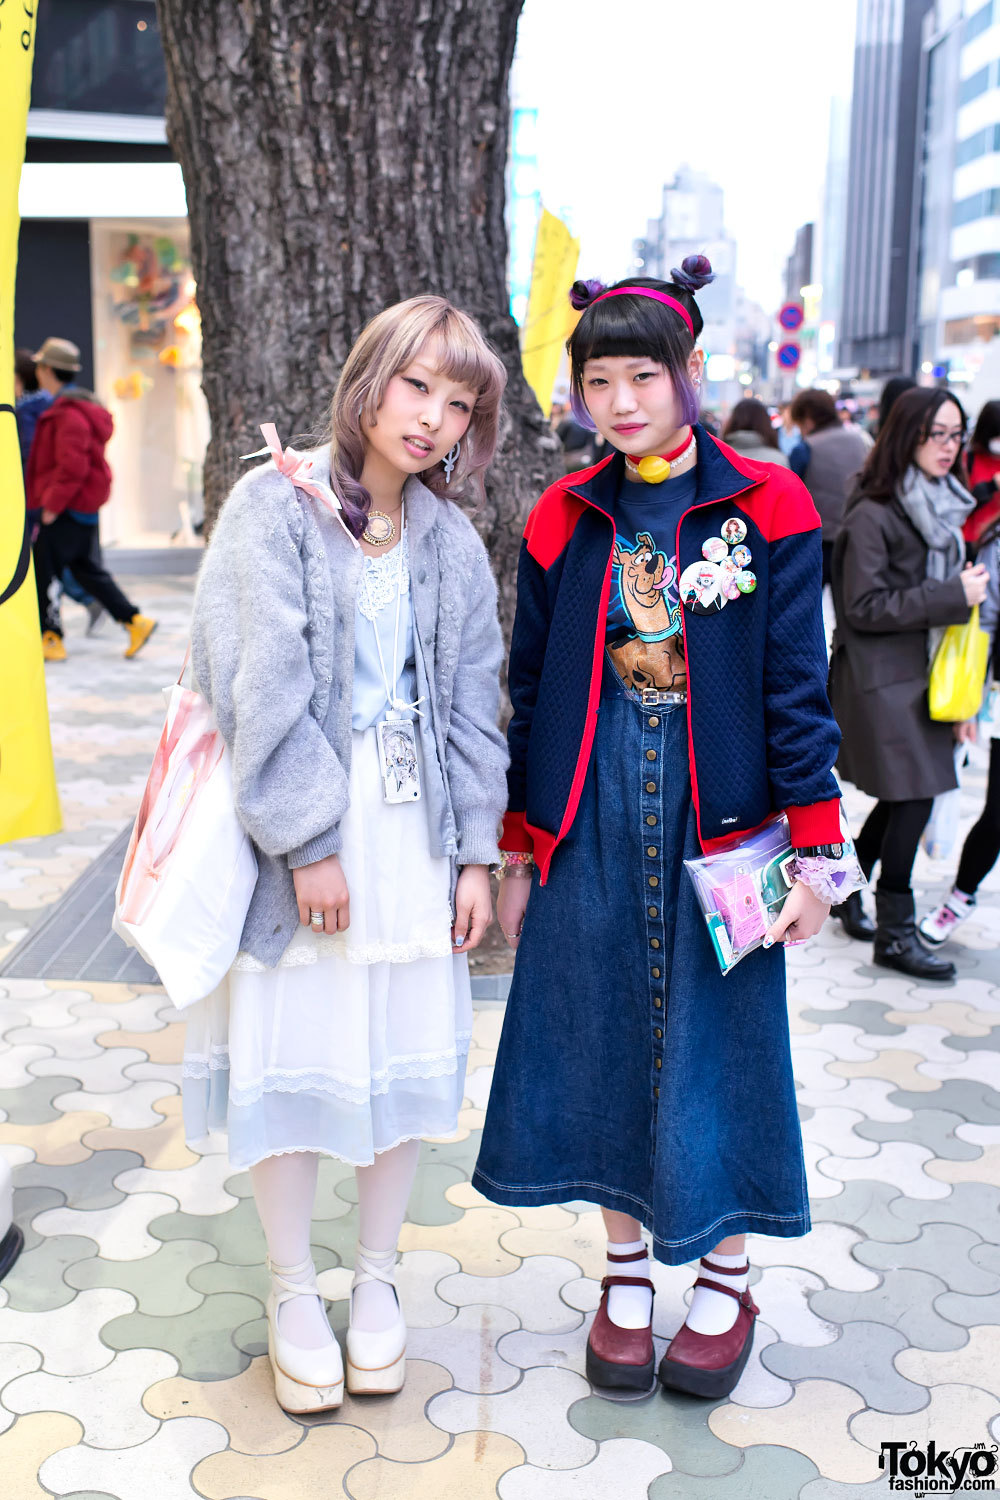 tokyo-fashion:  Sofy w/ items from Syrup & Grimoire. Elleanor w/ Doraemon choker & Scooby Doo top. On the street in Harajuku.